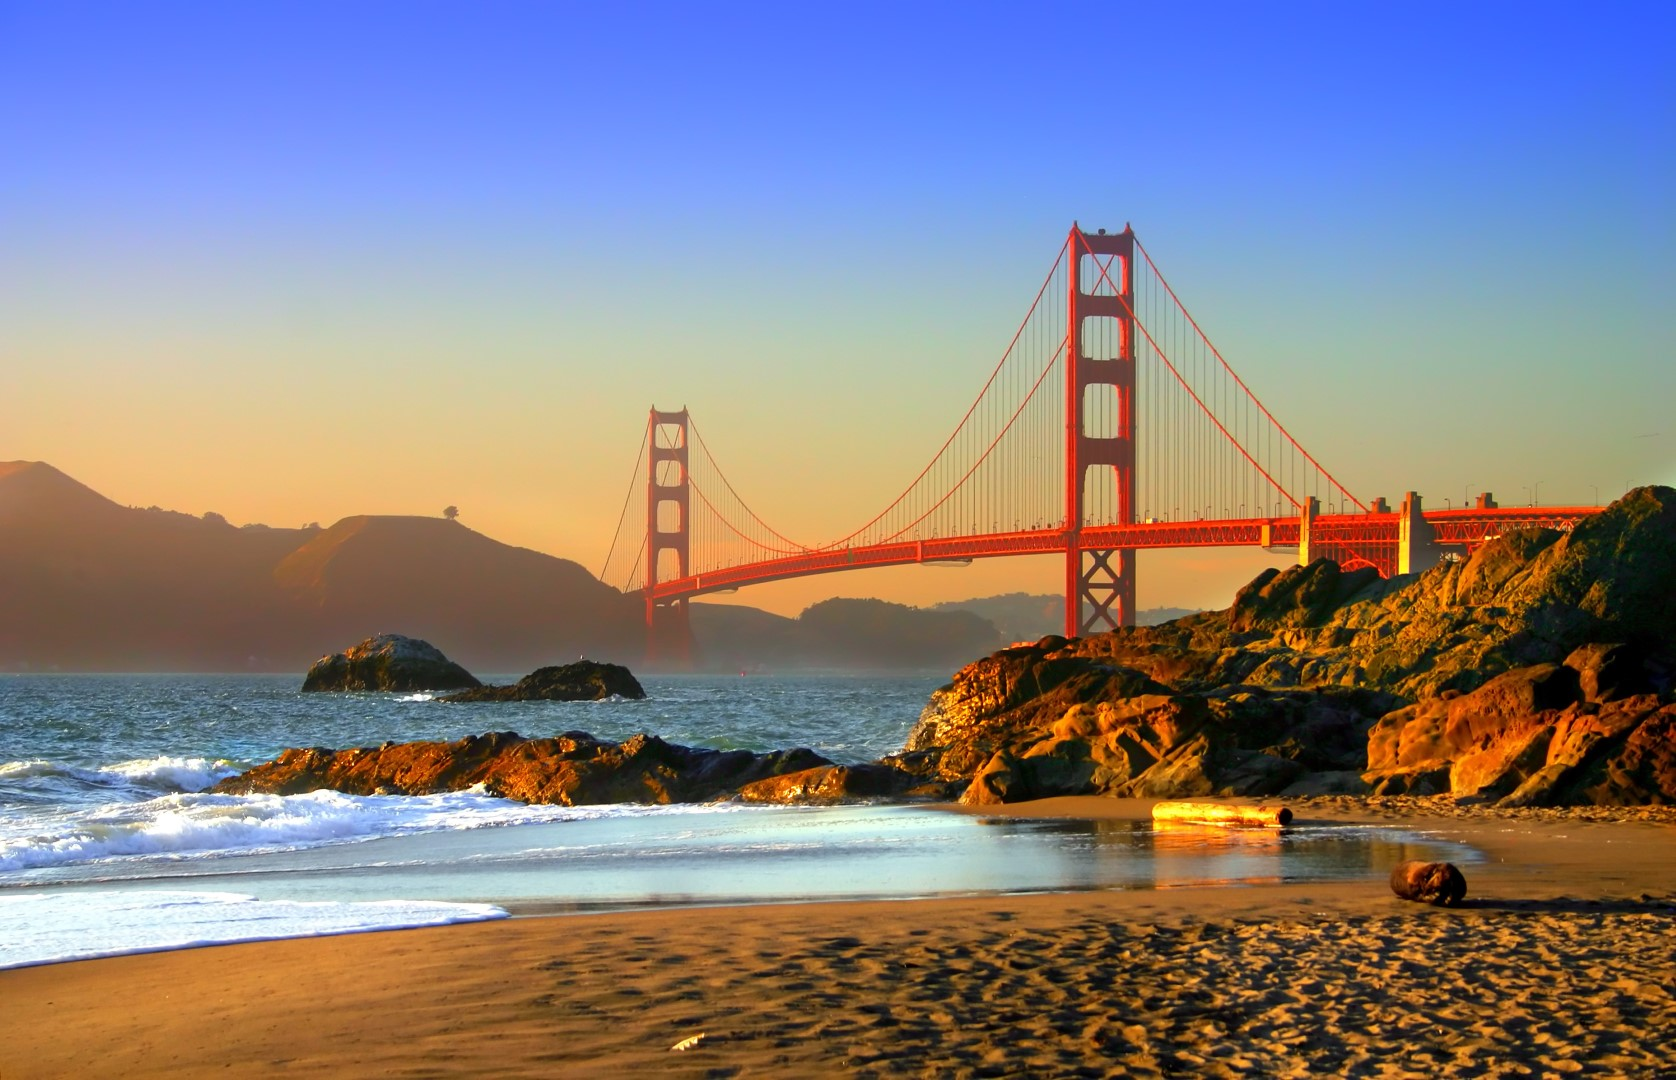 IEEE MTT-S 2016 in San Francisco, May 22-27 2016